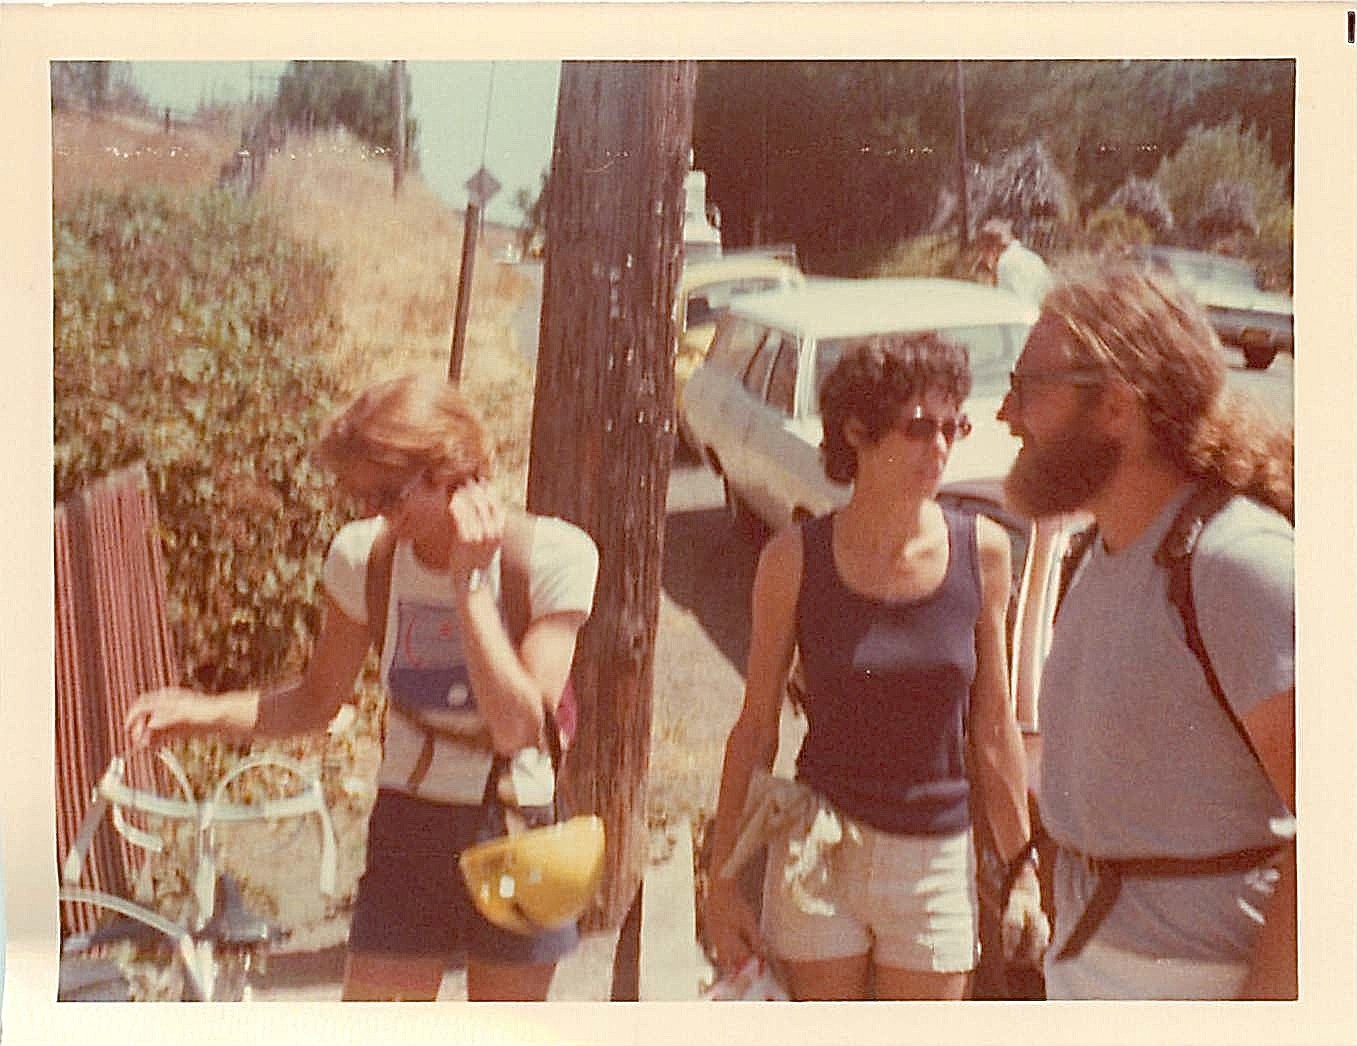 Janet Ring, Barbara Levinson, Bob Bishop  Aug. 1977 bike trip